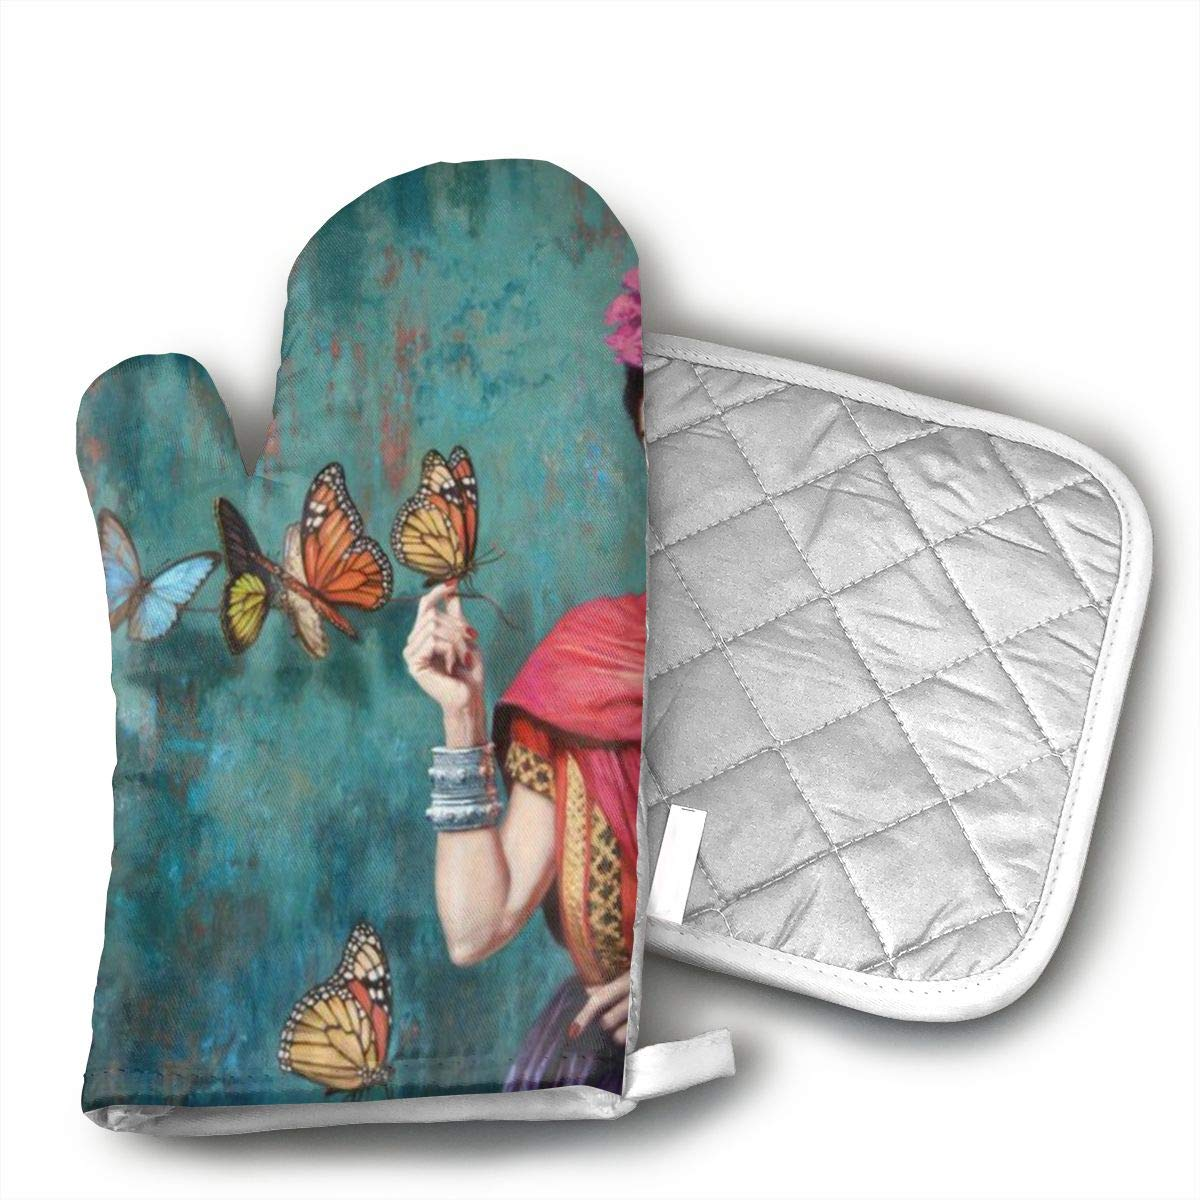 Wiqo9 Frida Interest Print Oven Mitts and Pot Holders Kitchen Mitten Cooking Gloves,Cooking, Baking, BBQ.